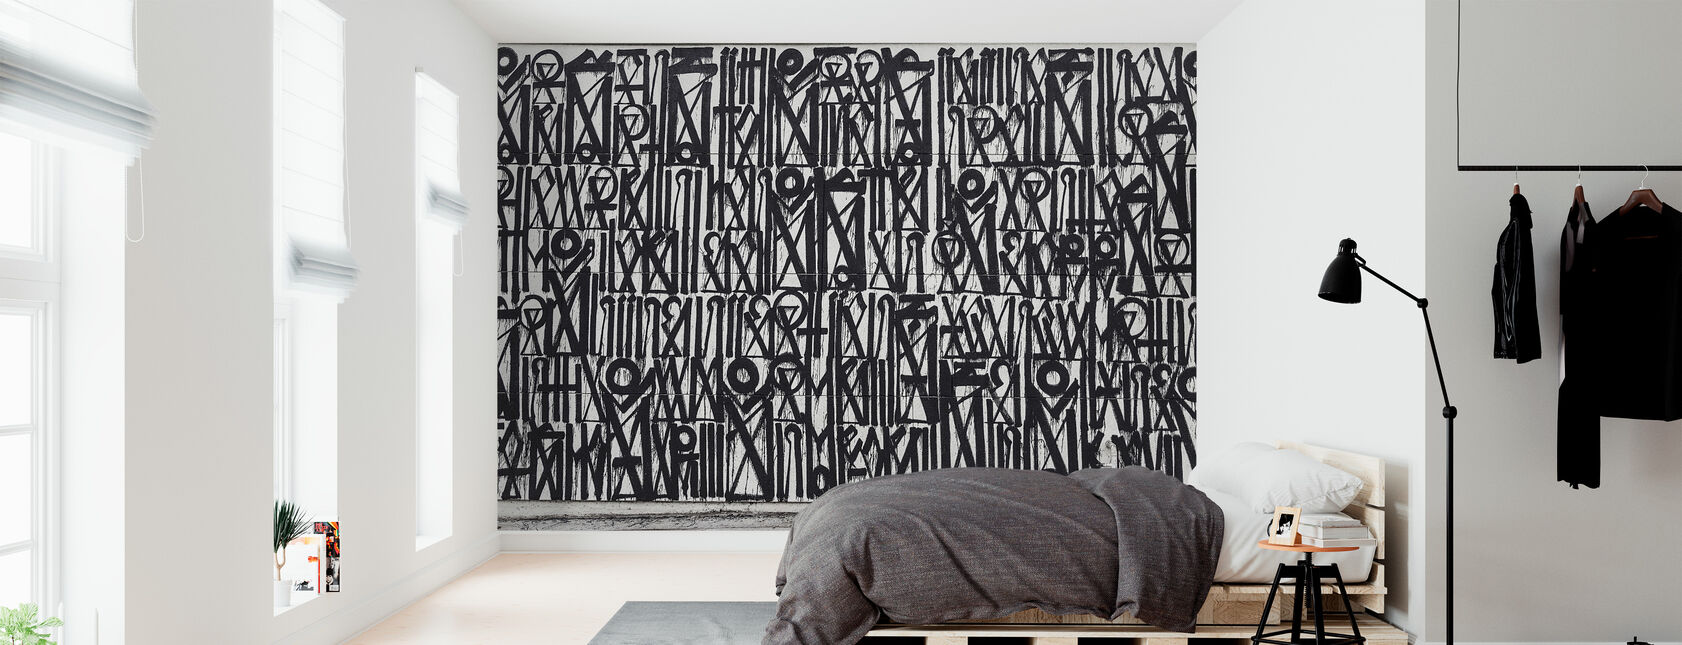 Abstract Graffiti - Wallpaper - Bedroom